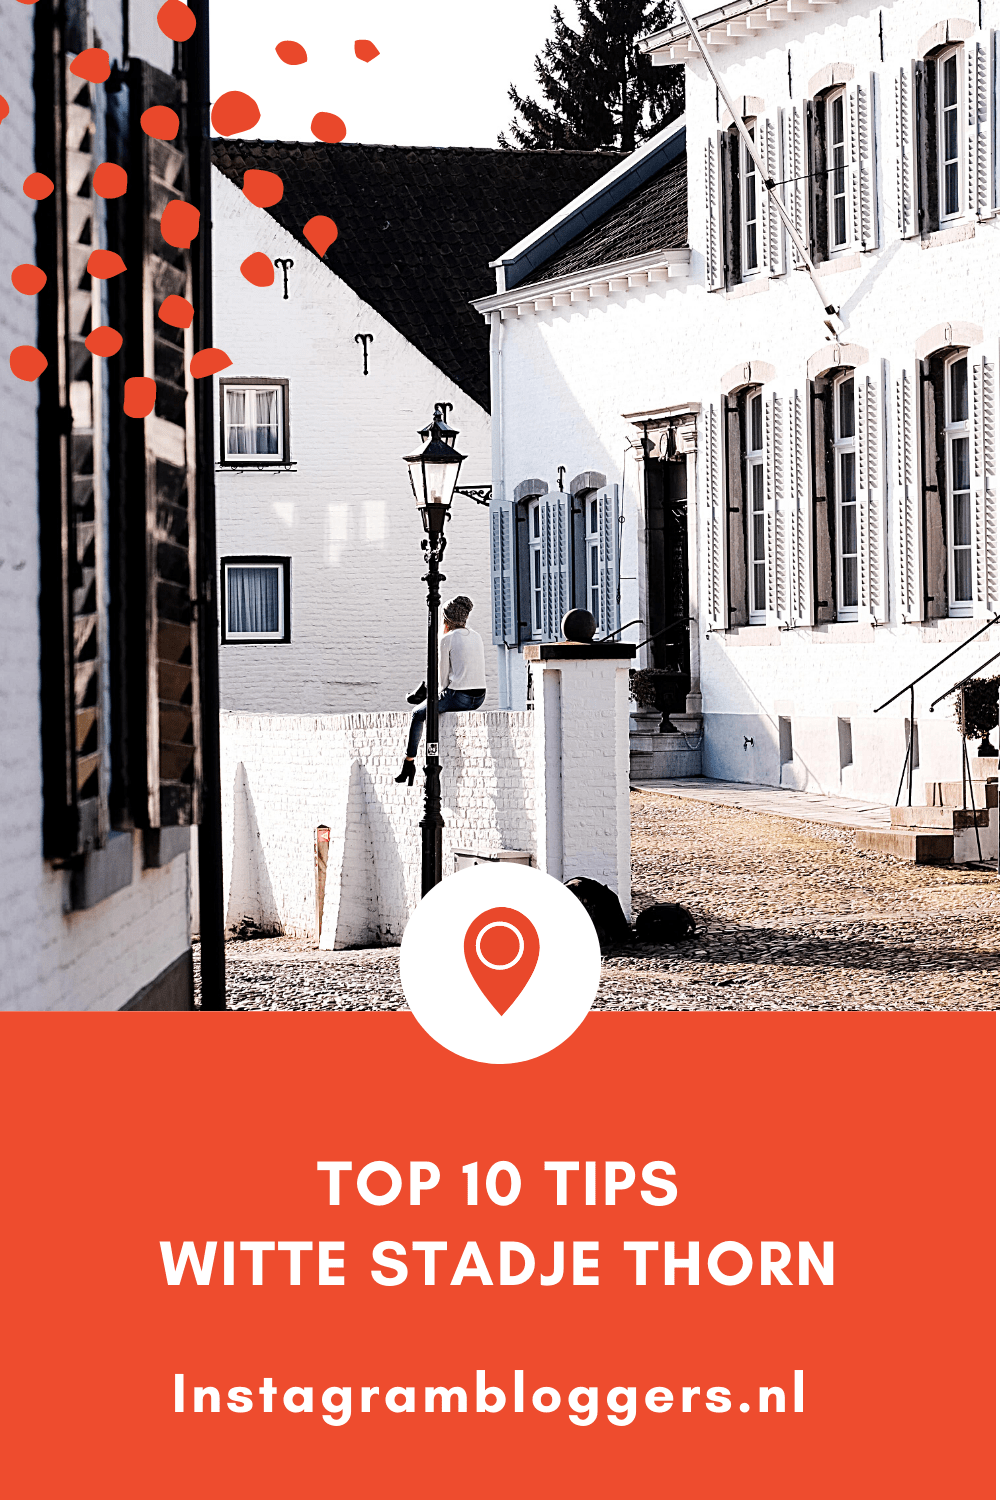 10 tips witte stadje thorn